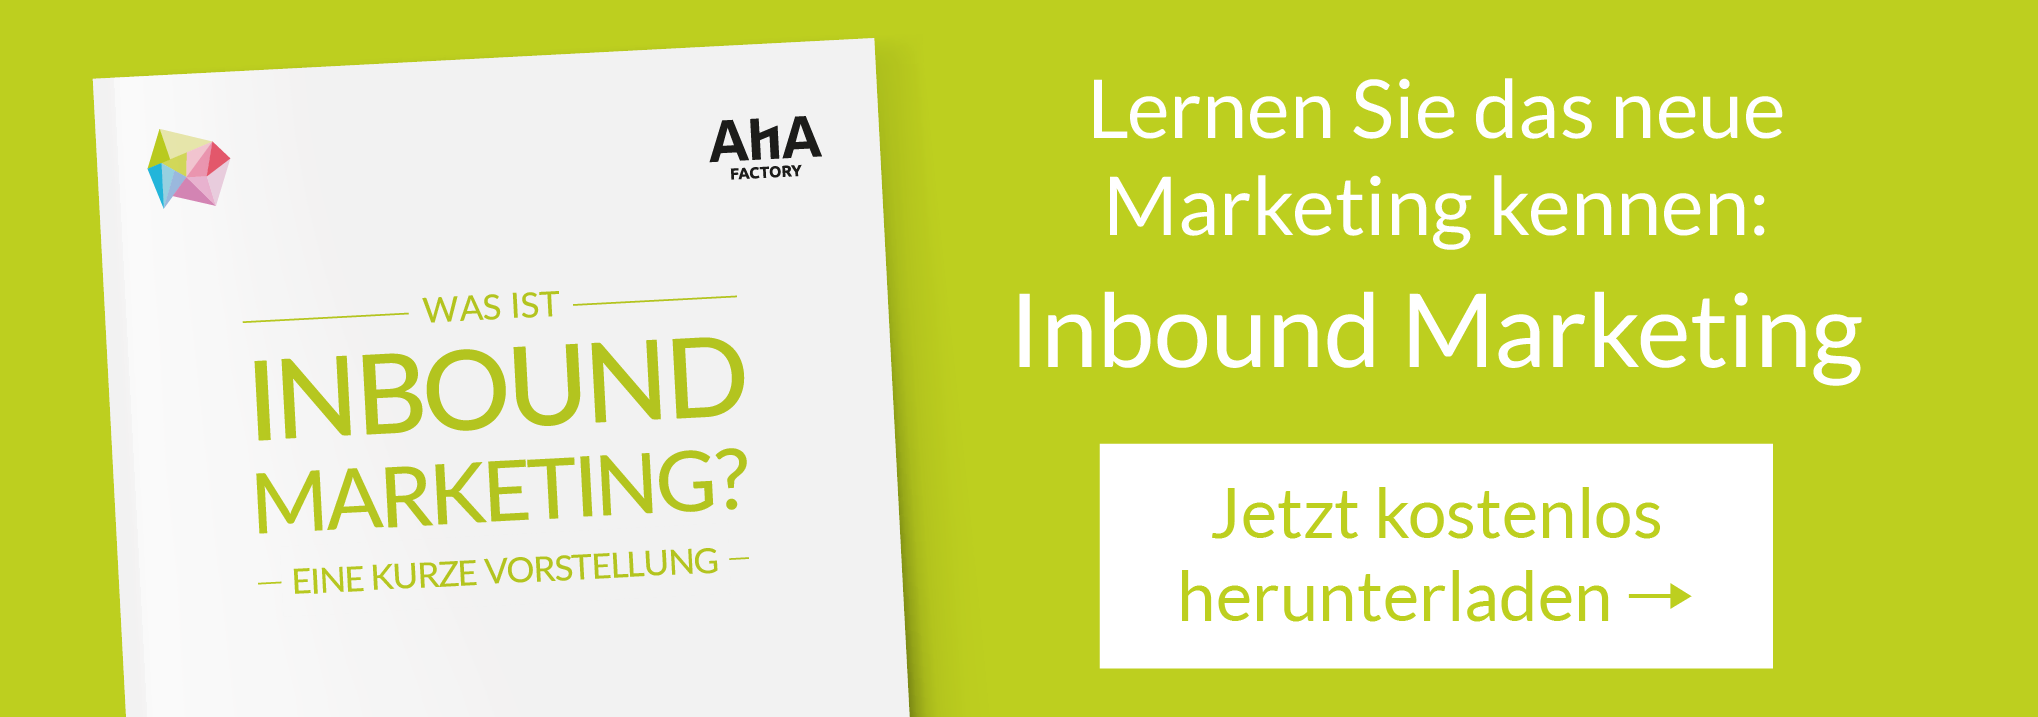 CTA - Was ist Inbound Marketing?